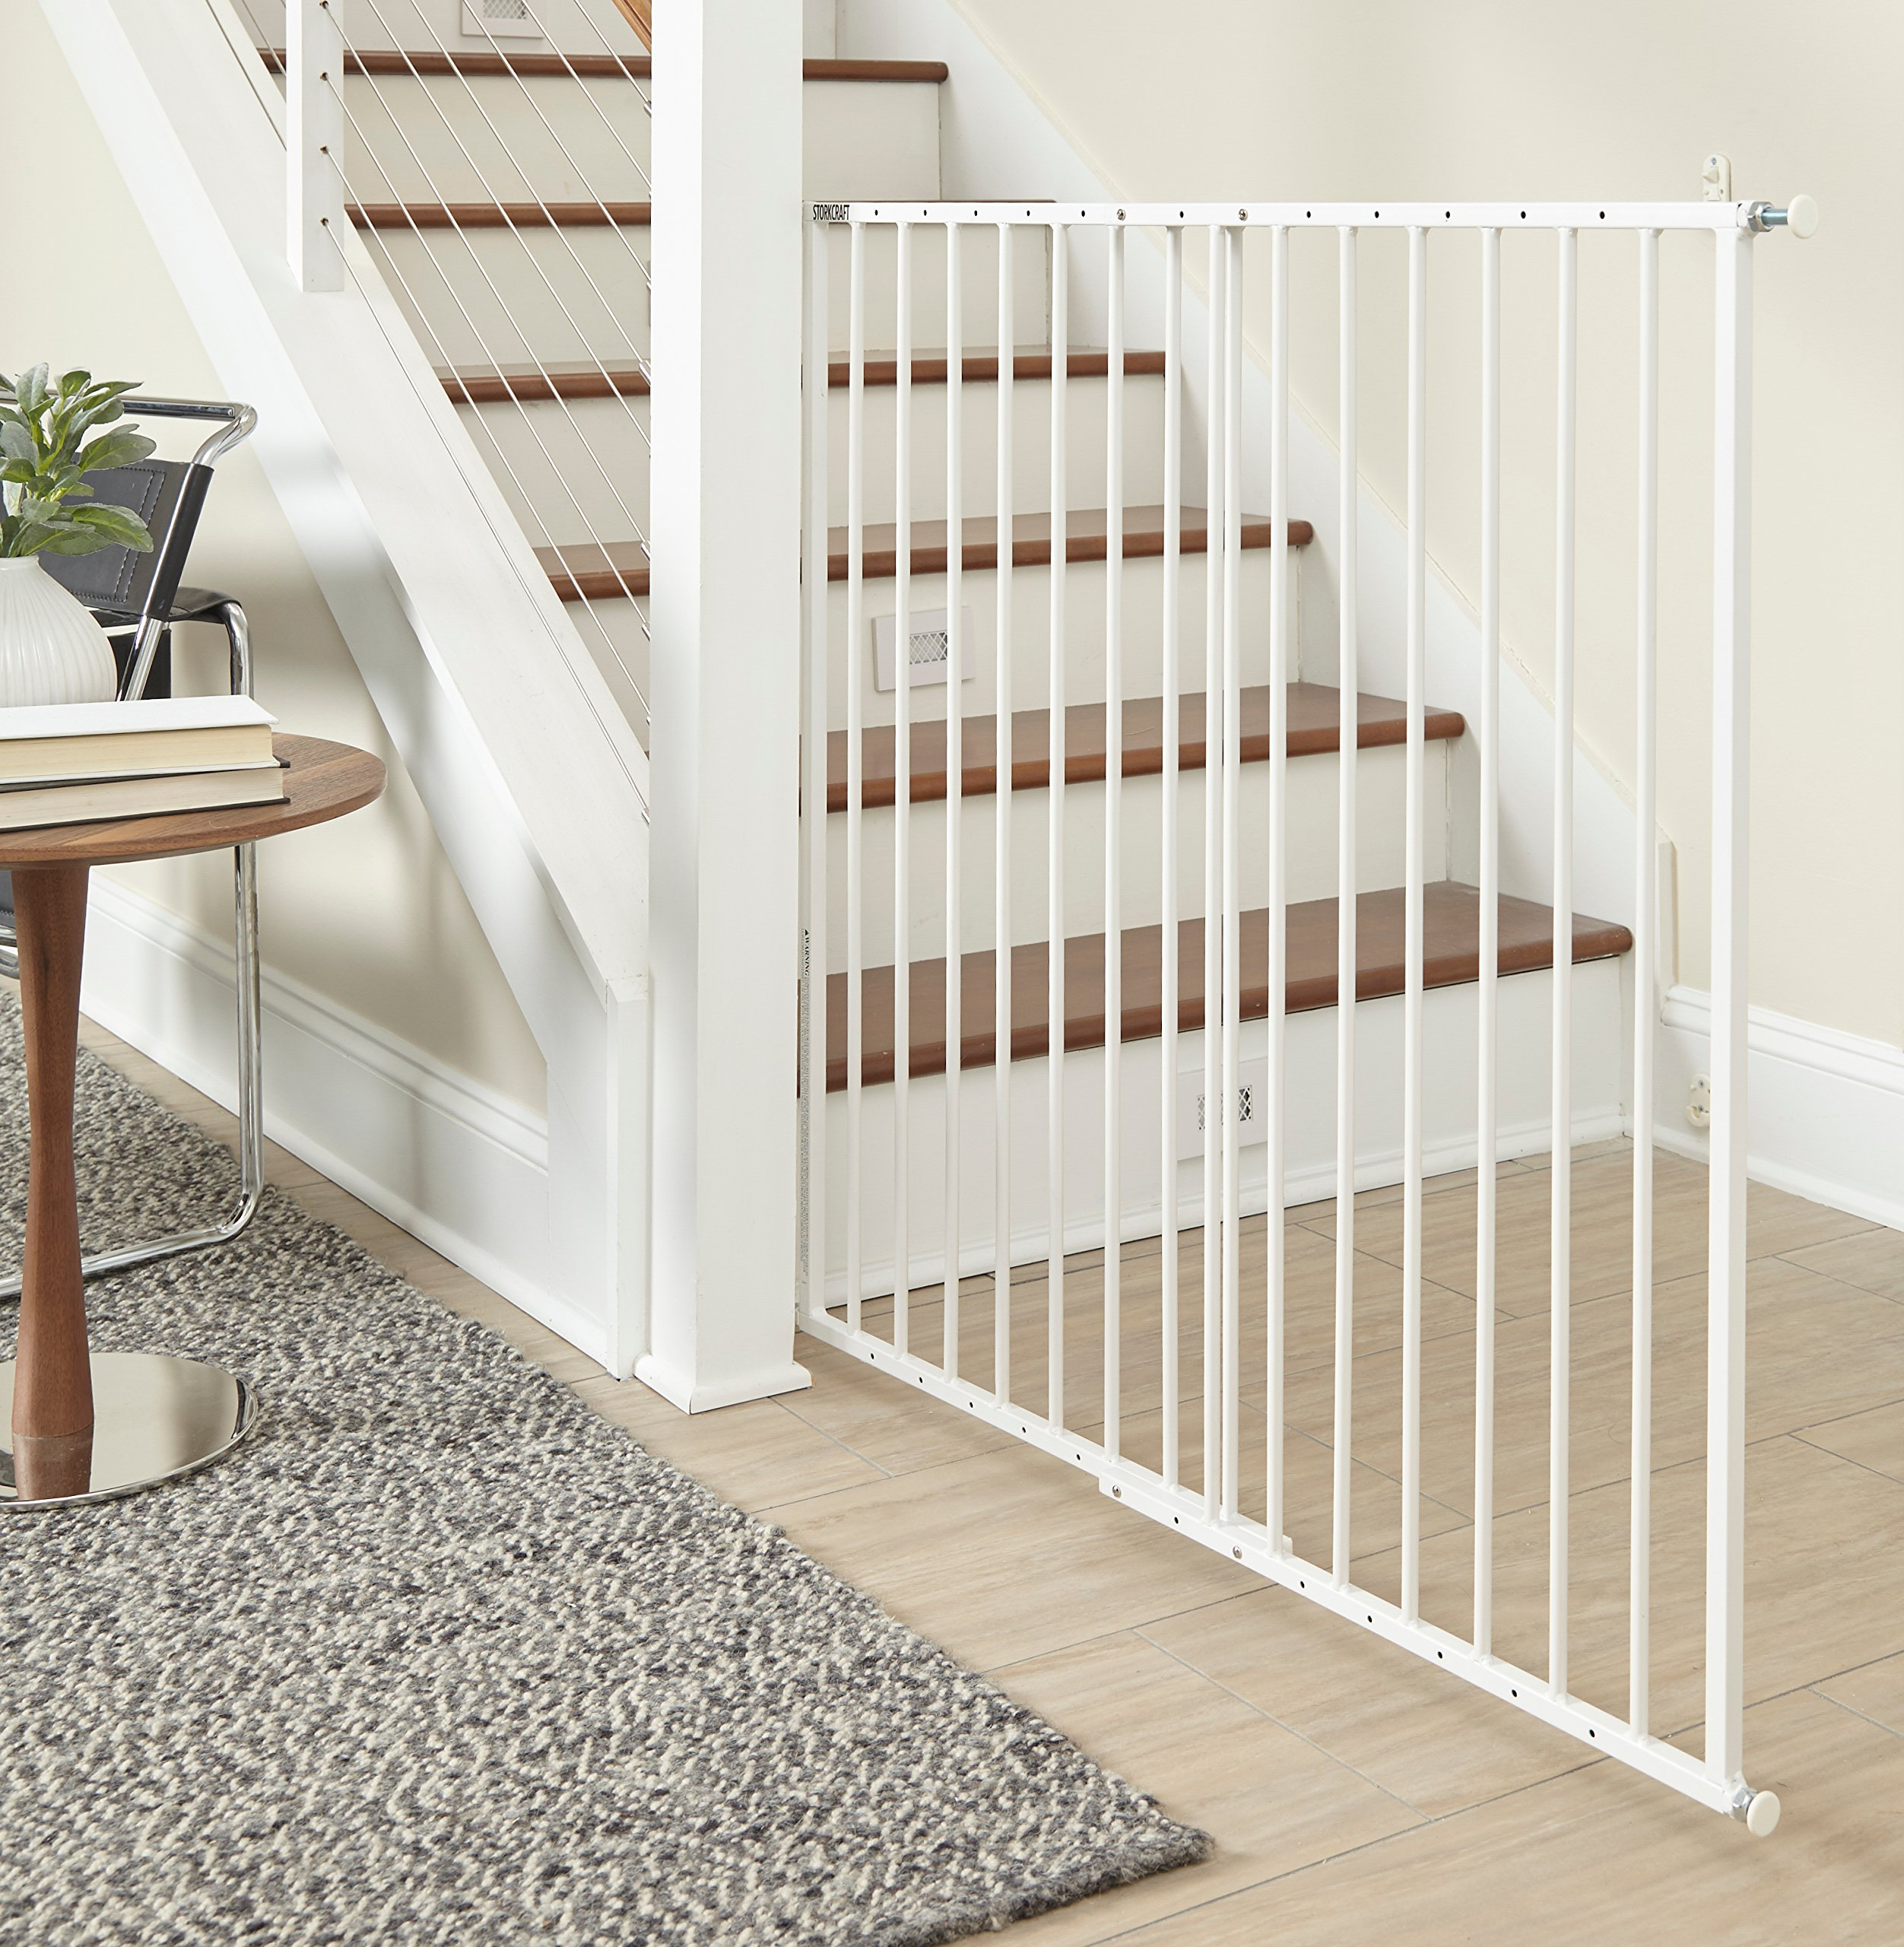 Storkcraft Easy Walk-Thru Tall Metal Safety Gate, White Adjustable Baby Safety Gate For Doorways and Stairs, Great for Children and Pets by Stork Craft (Image #2)